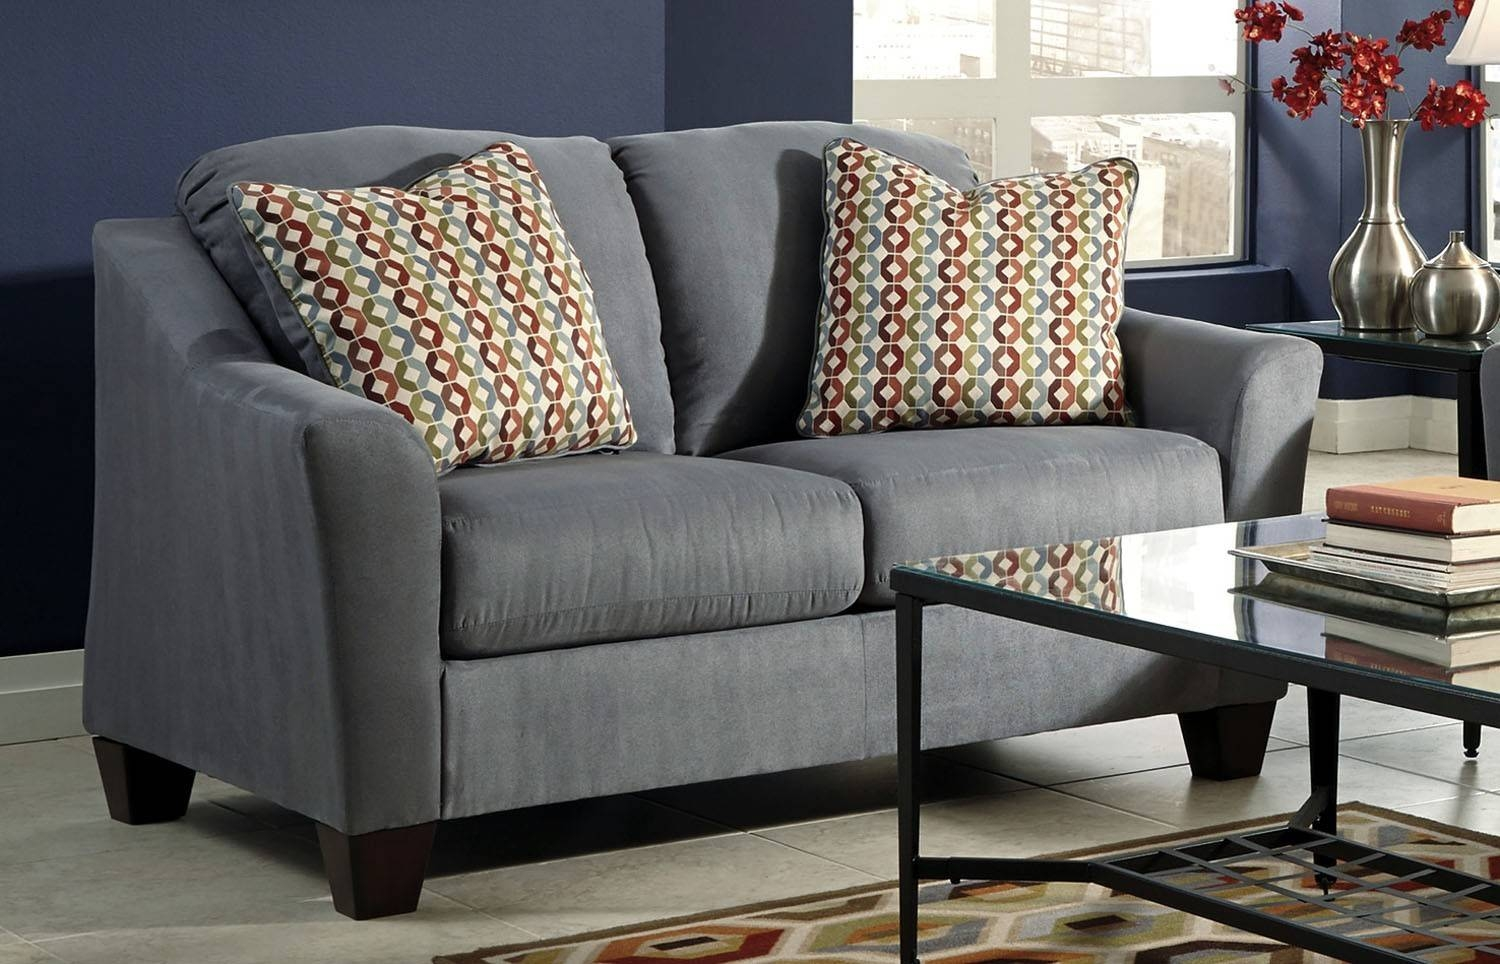 Hannin-Lagoon Loveseat | Ashley Furniture | Orange County, Ca with regard to Sofa Orange County (Image 6 of 25)